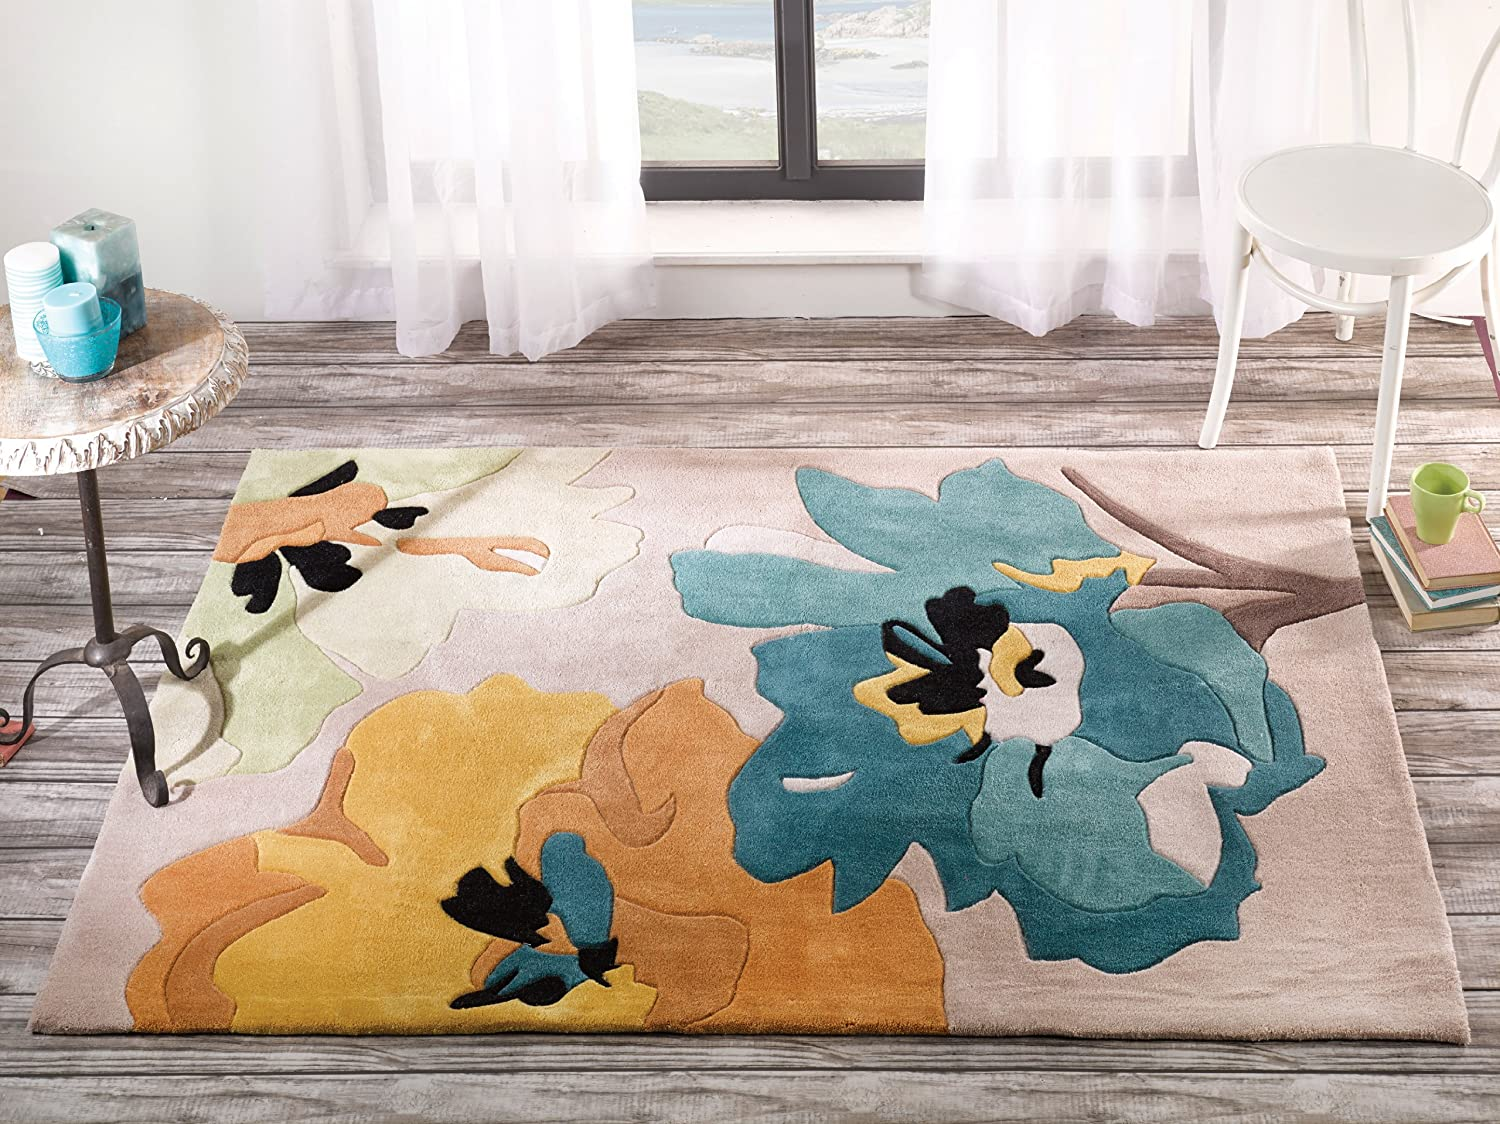 Quality contemporary flower design turquoise yellow area rug in 80 x quality contemporary flower design turquoise yellow area rug in 80 x 150 cm 26 x 5 carpet amazon kitchen home mightylinksfo